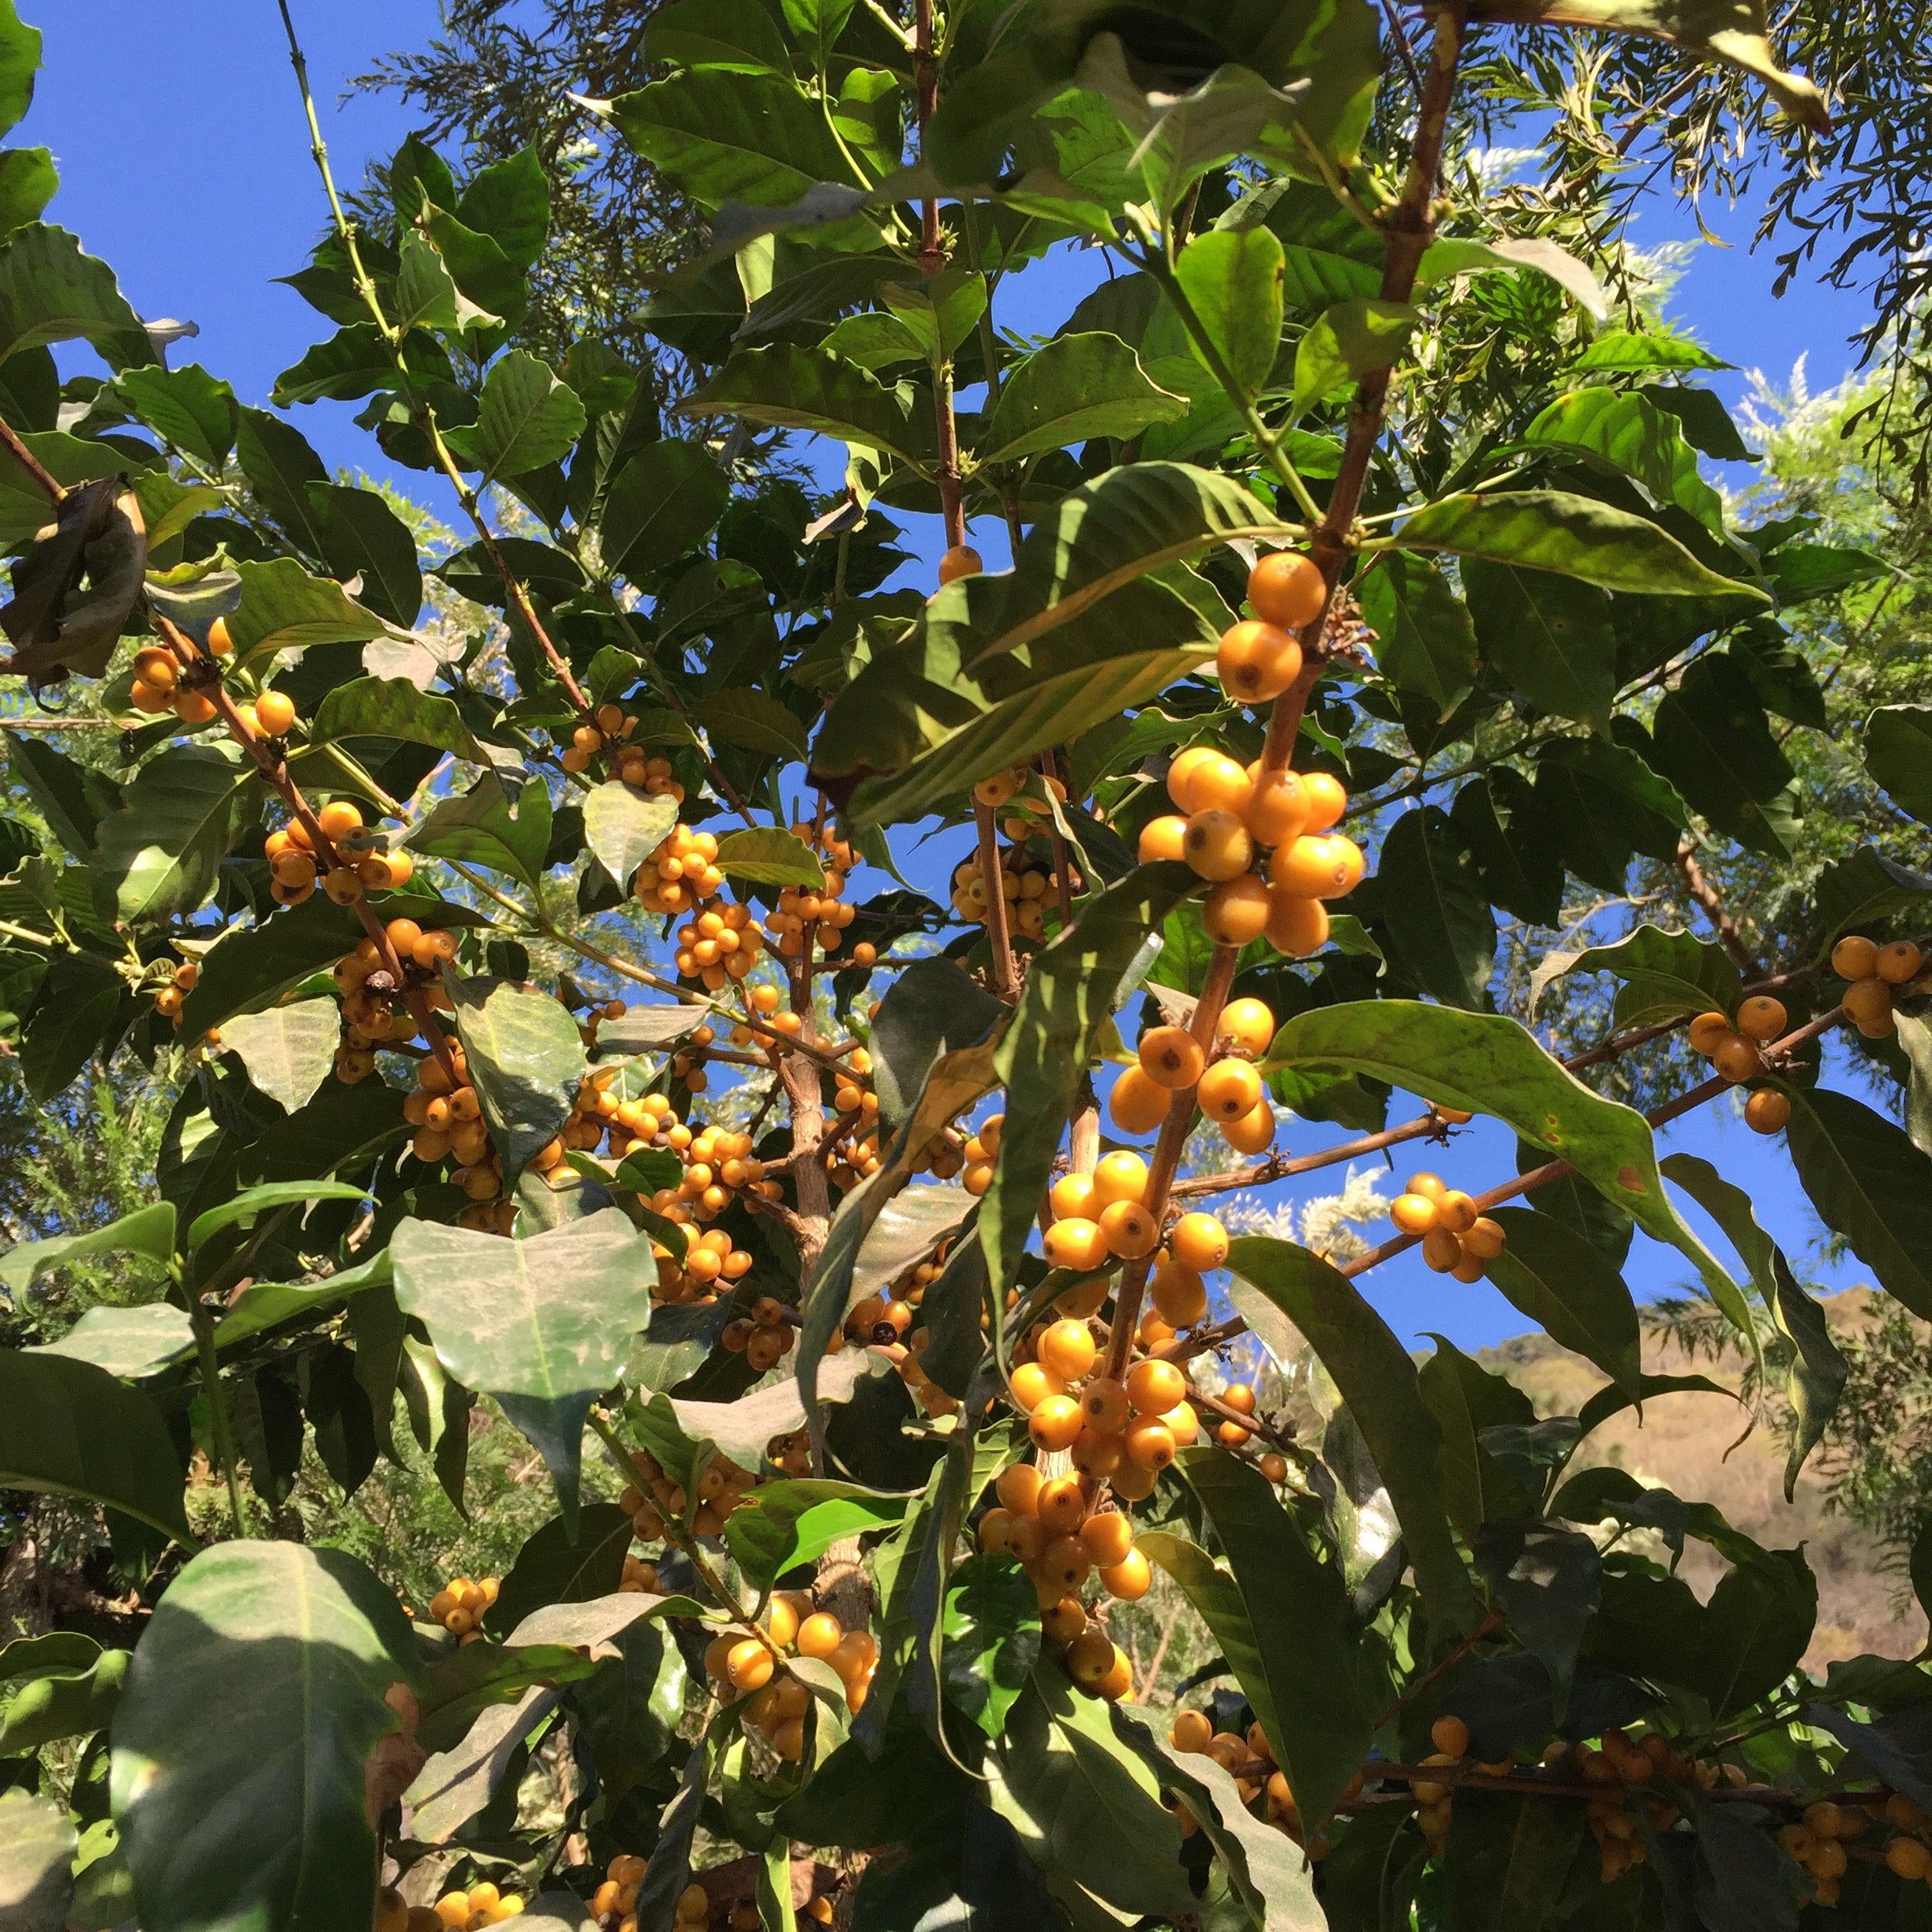 Yellow Bourbon variety of coffee cherries on a coffee shrub ready to pick